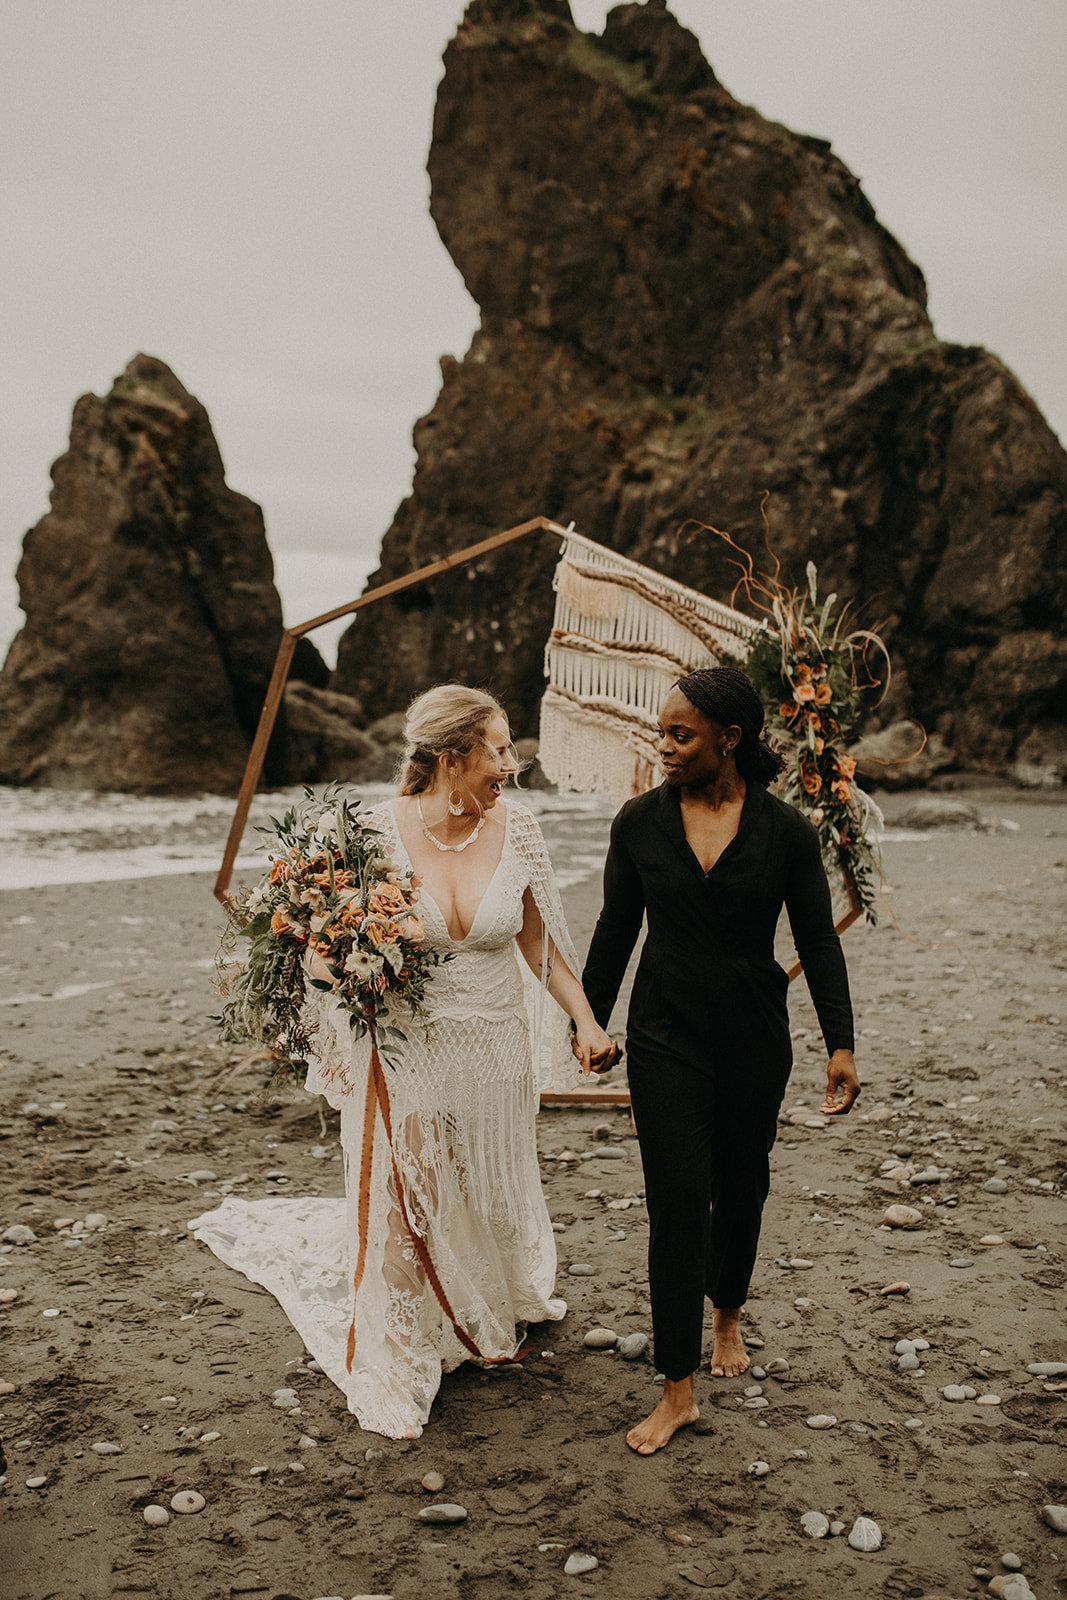 Ruby_Beach_Styled_Elopement_-_Run_Away_with_Me_Elopement_Collective_-_Kamra_Fuller_Photography_-_Ceremony-72